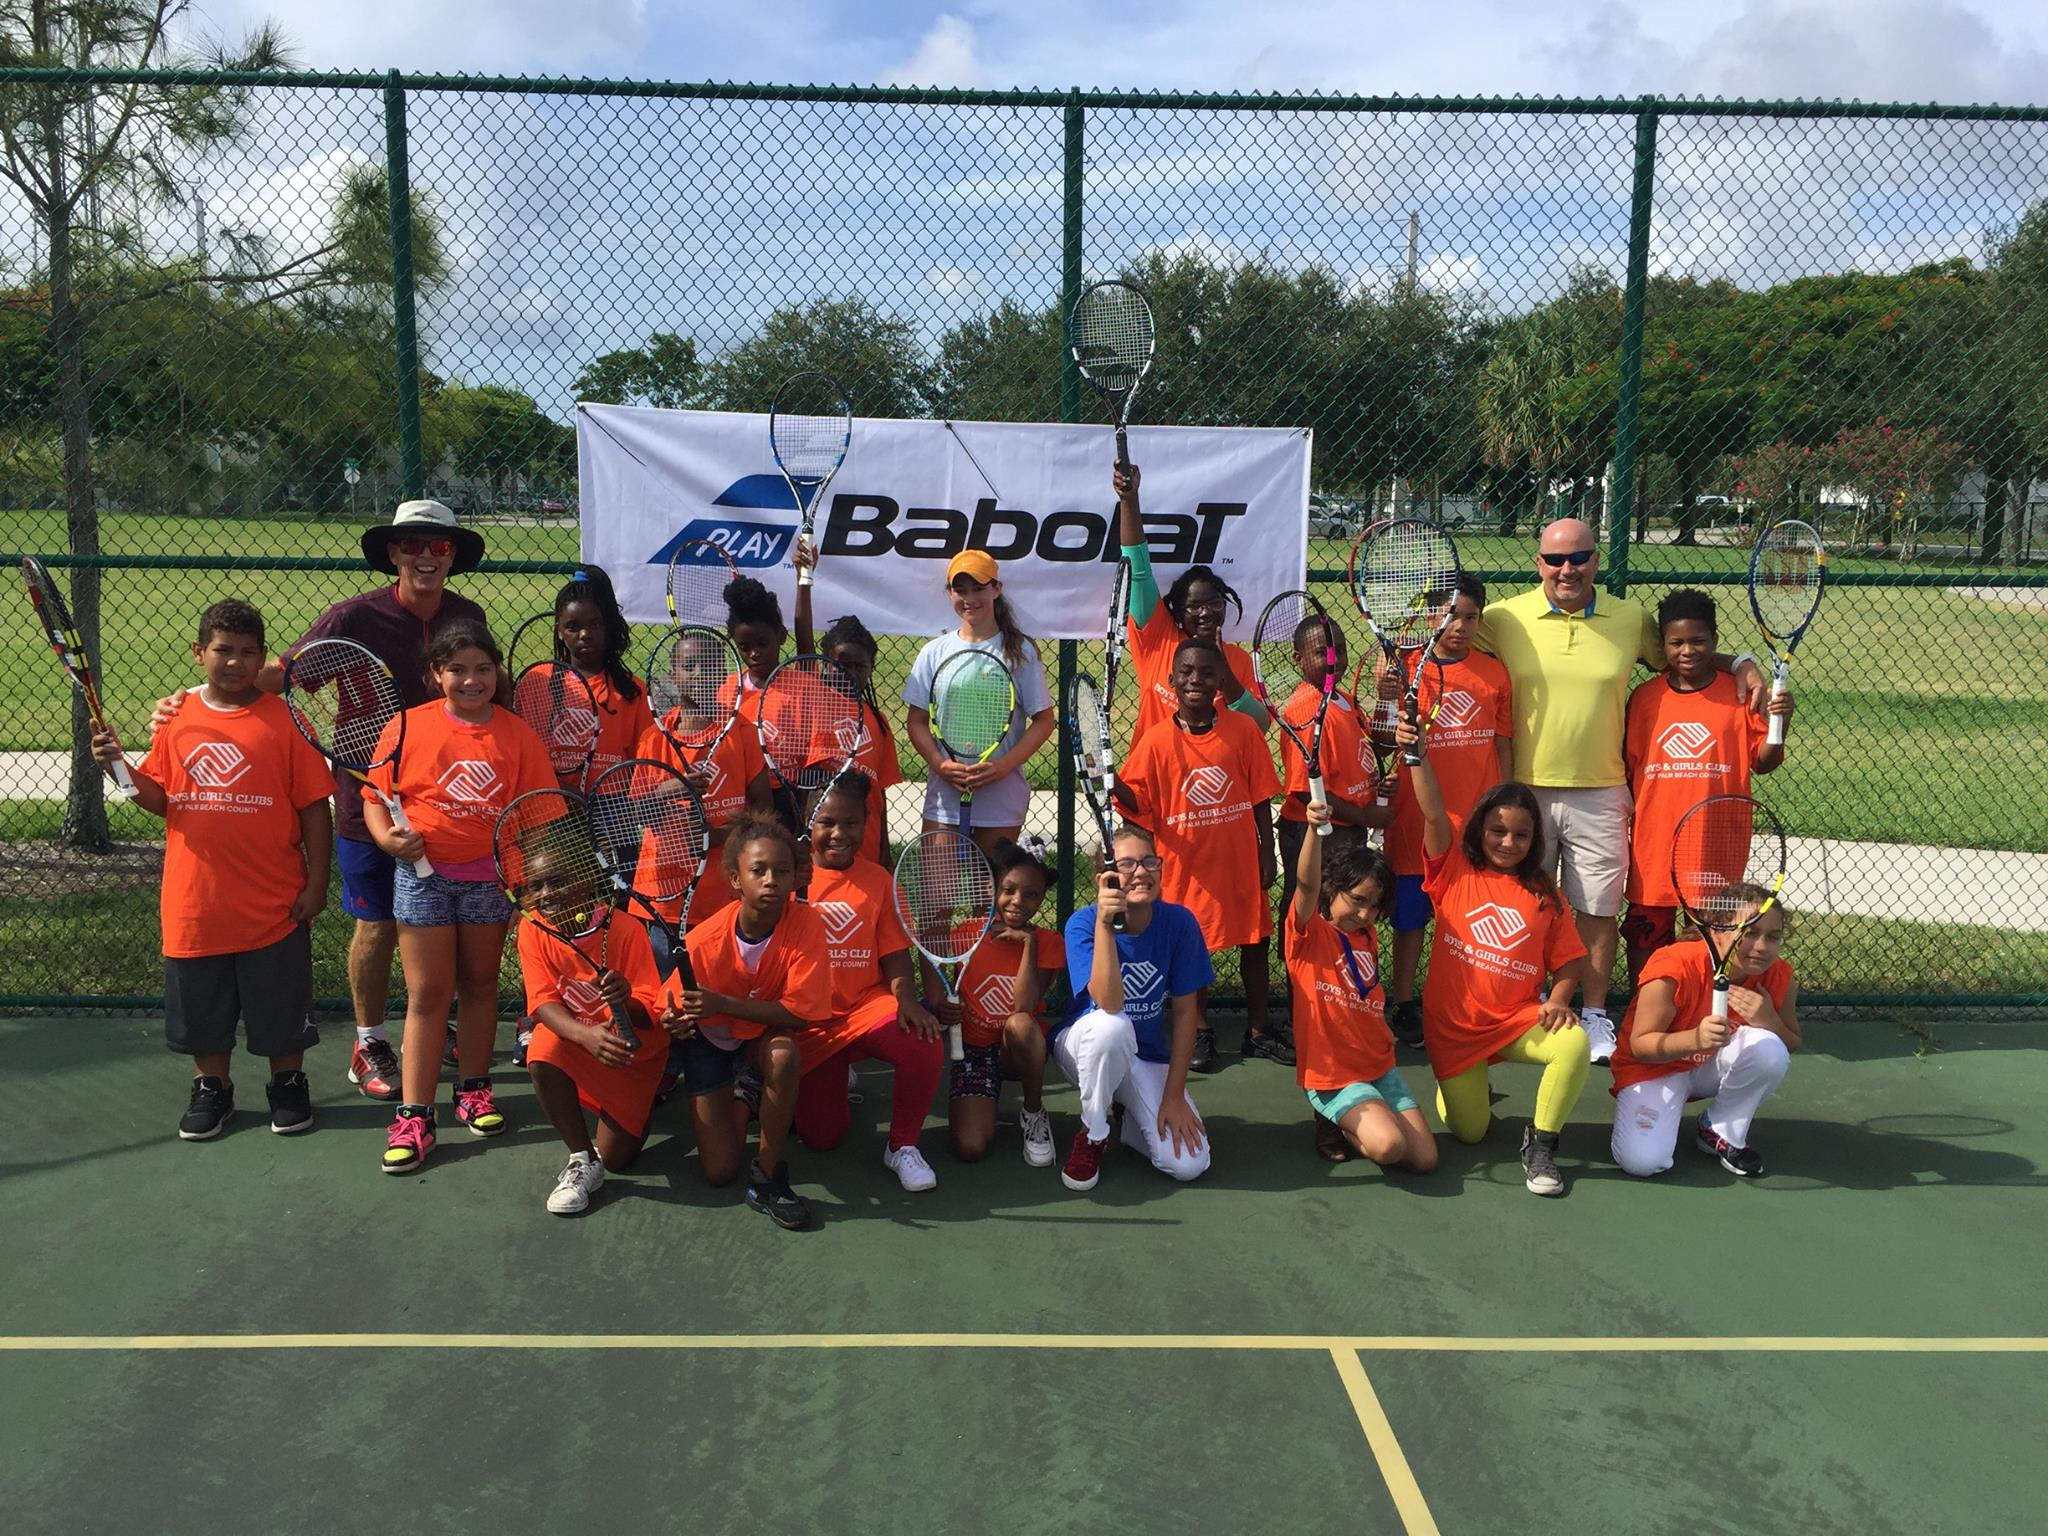 Boys & Girls Clubs of Palm Beach County neighborhood